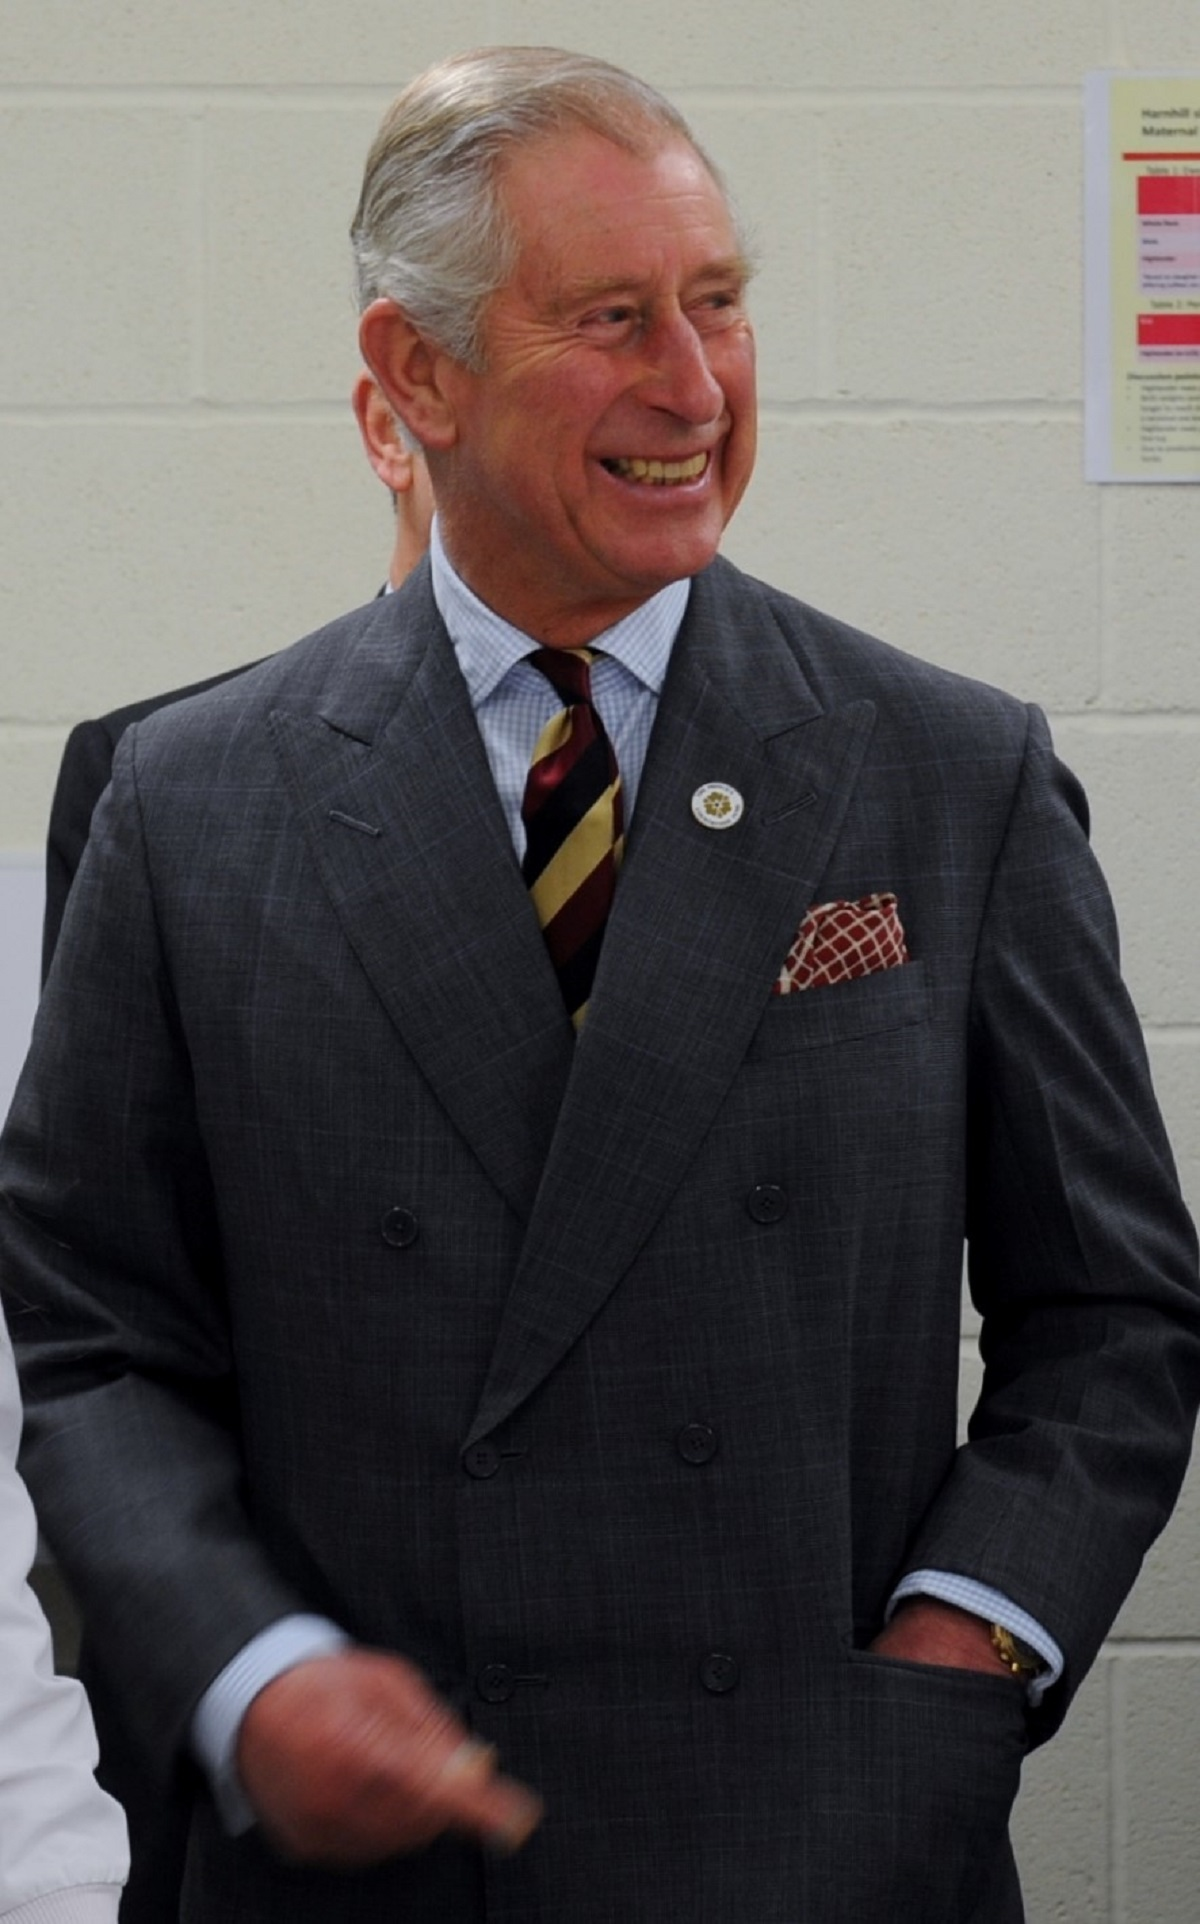 Prince Charles to tour Mary Rose on visit to Hampshire